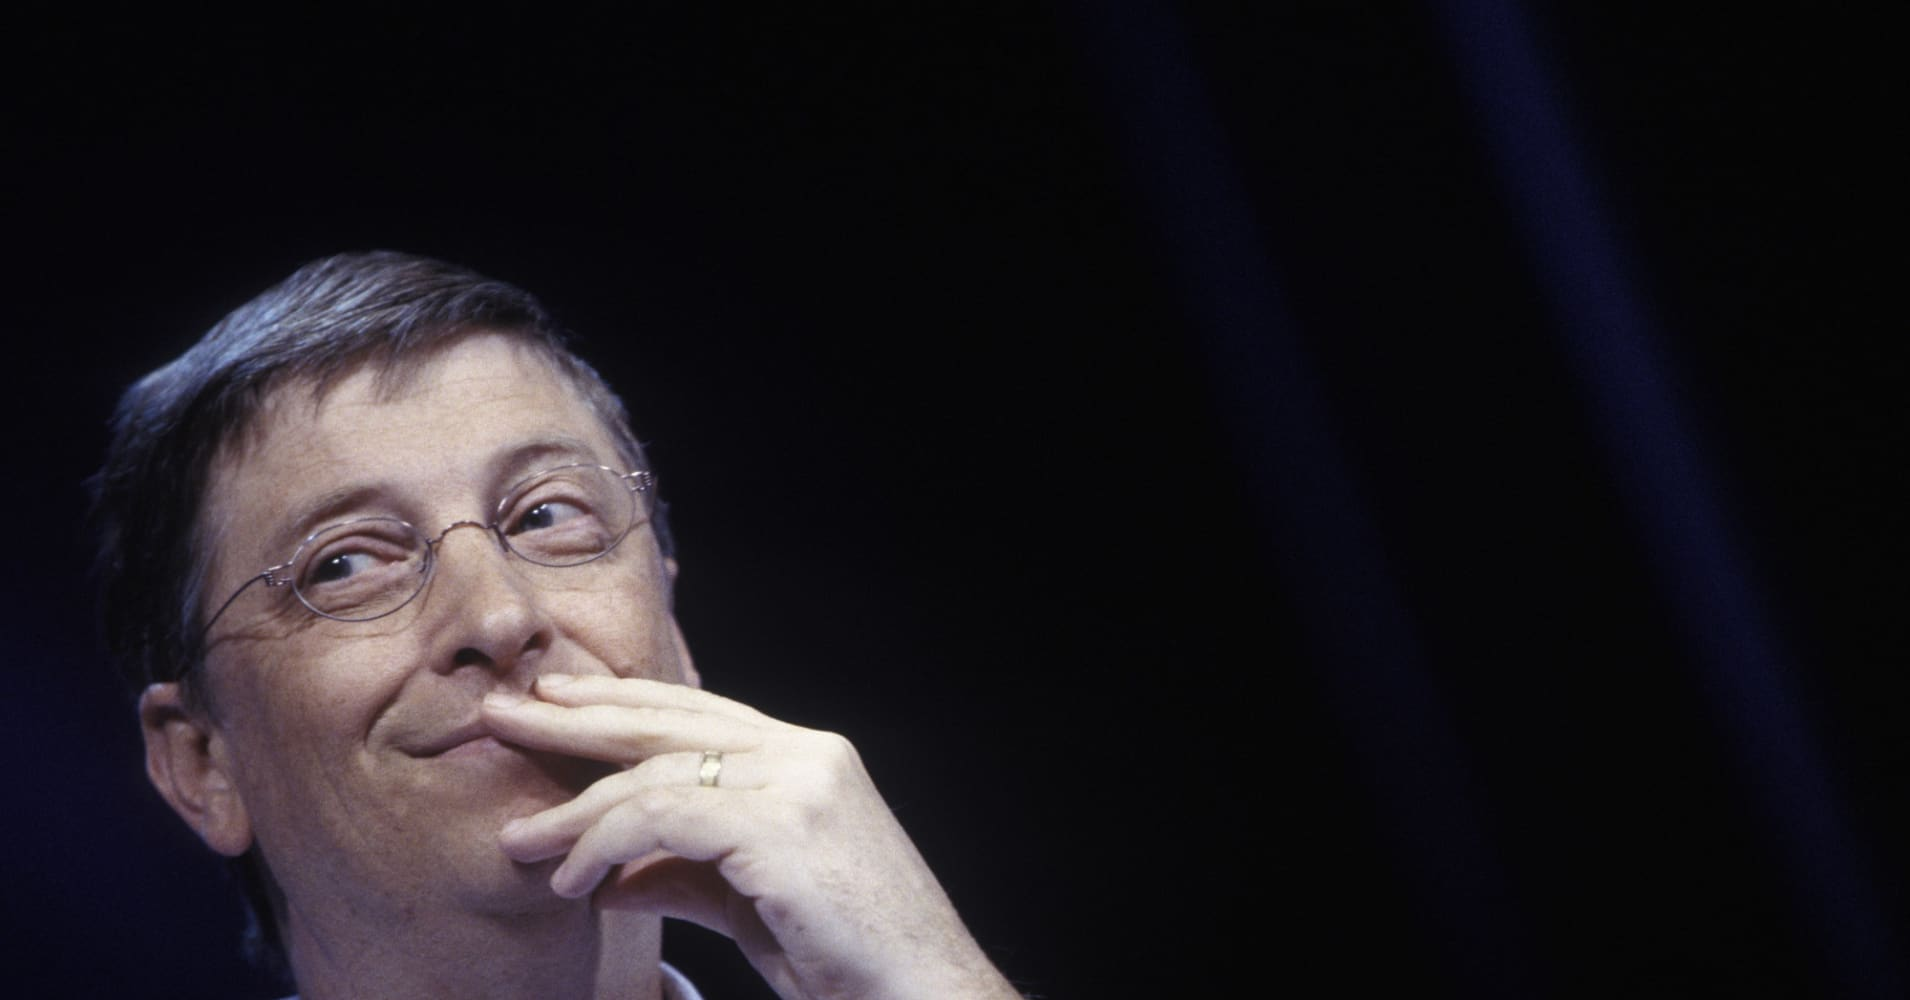 Photo of Bill Gates in 2002